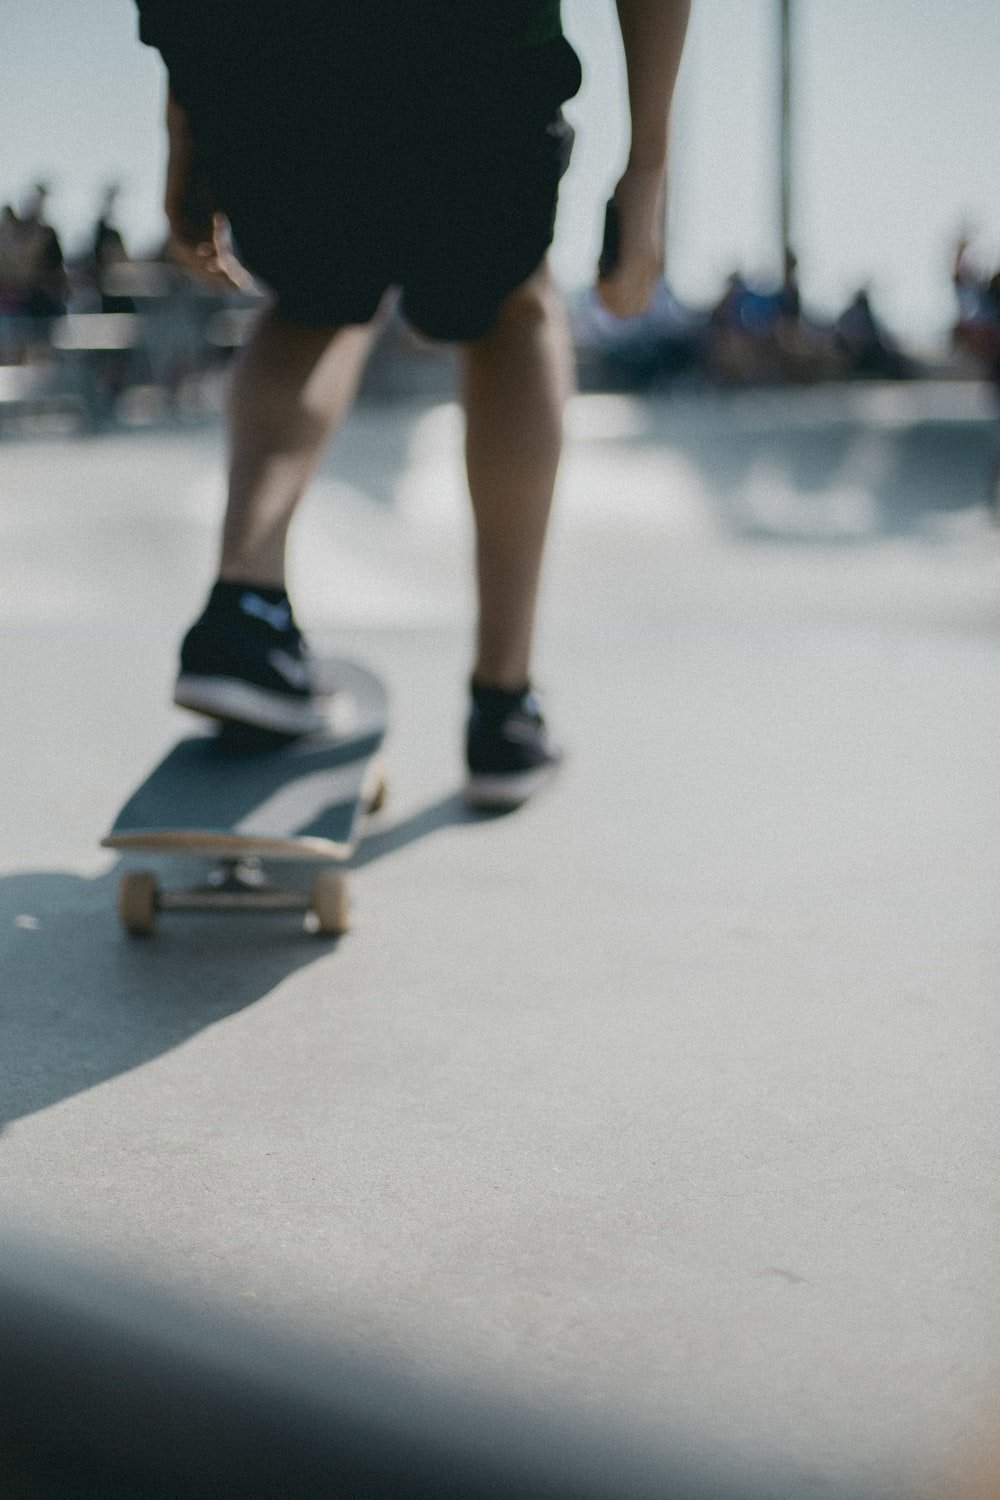 person about to ride skateboard